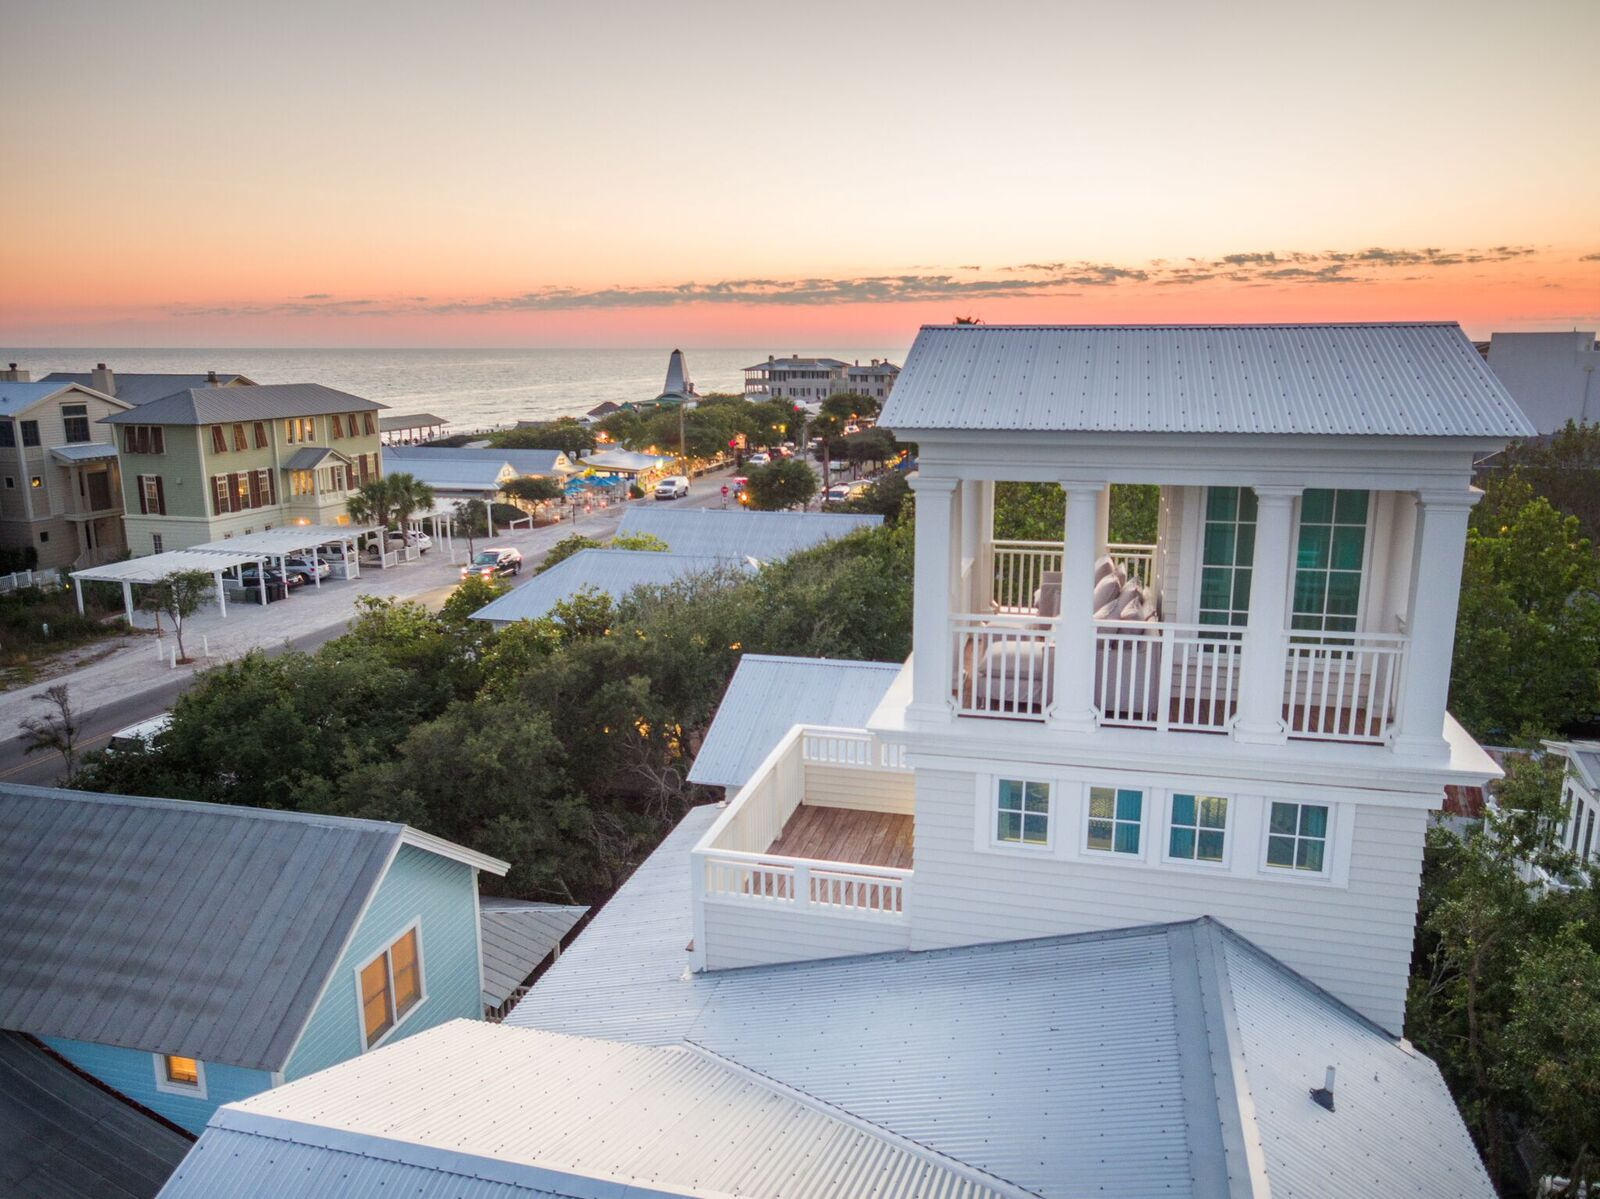 Breathtakingly gorgeous 23 E Ruskin Street, Seaside, FL - DON'T MISS OUT BOOK NOW!